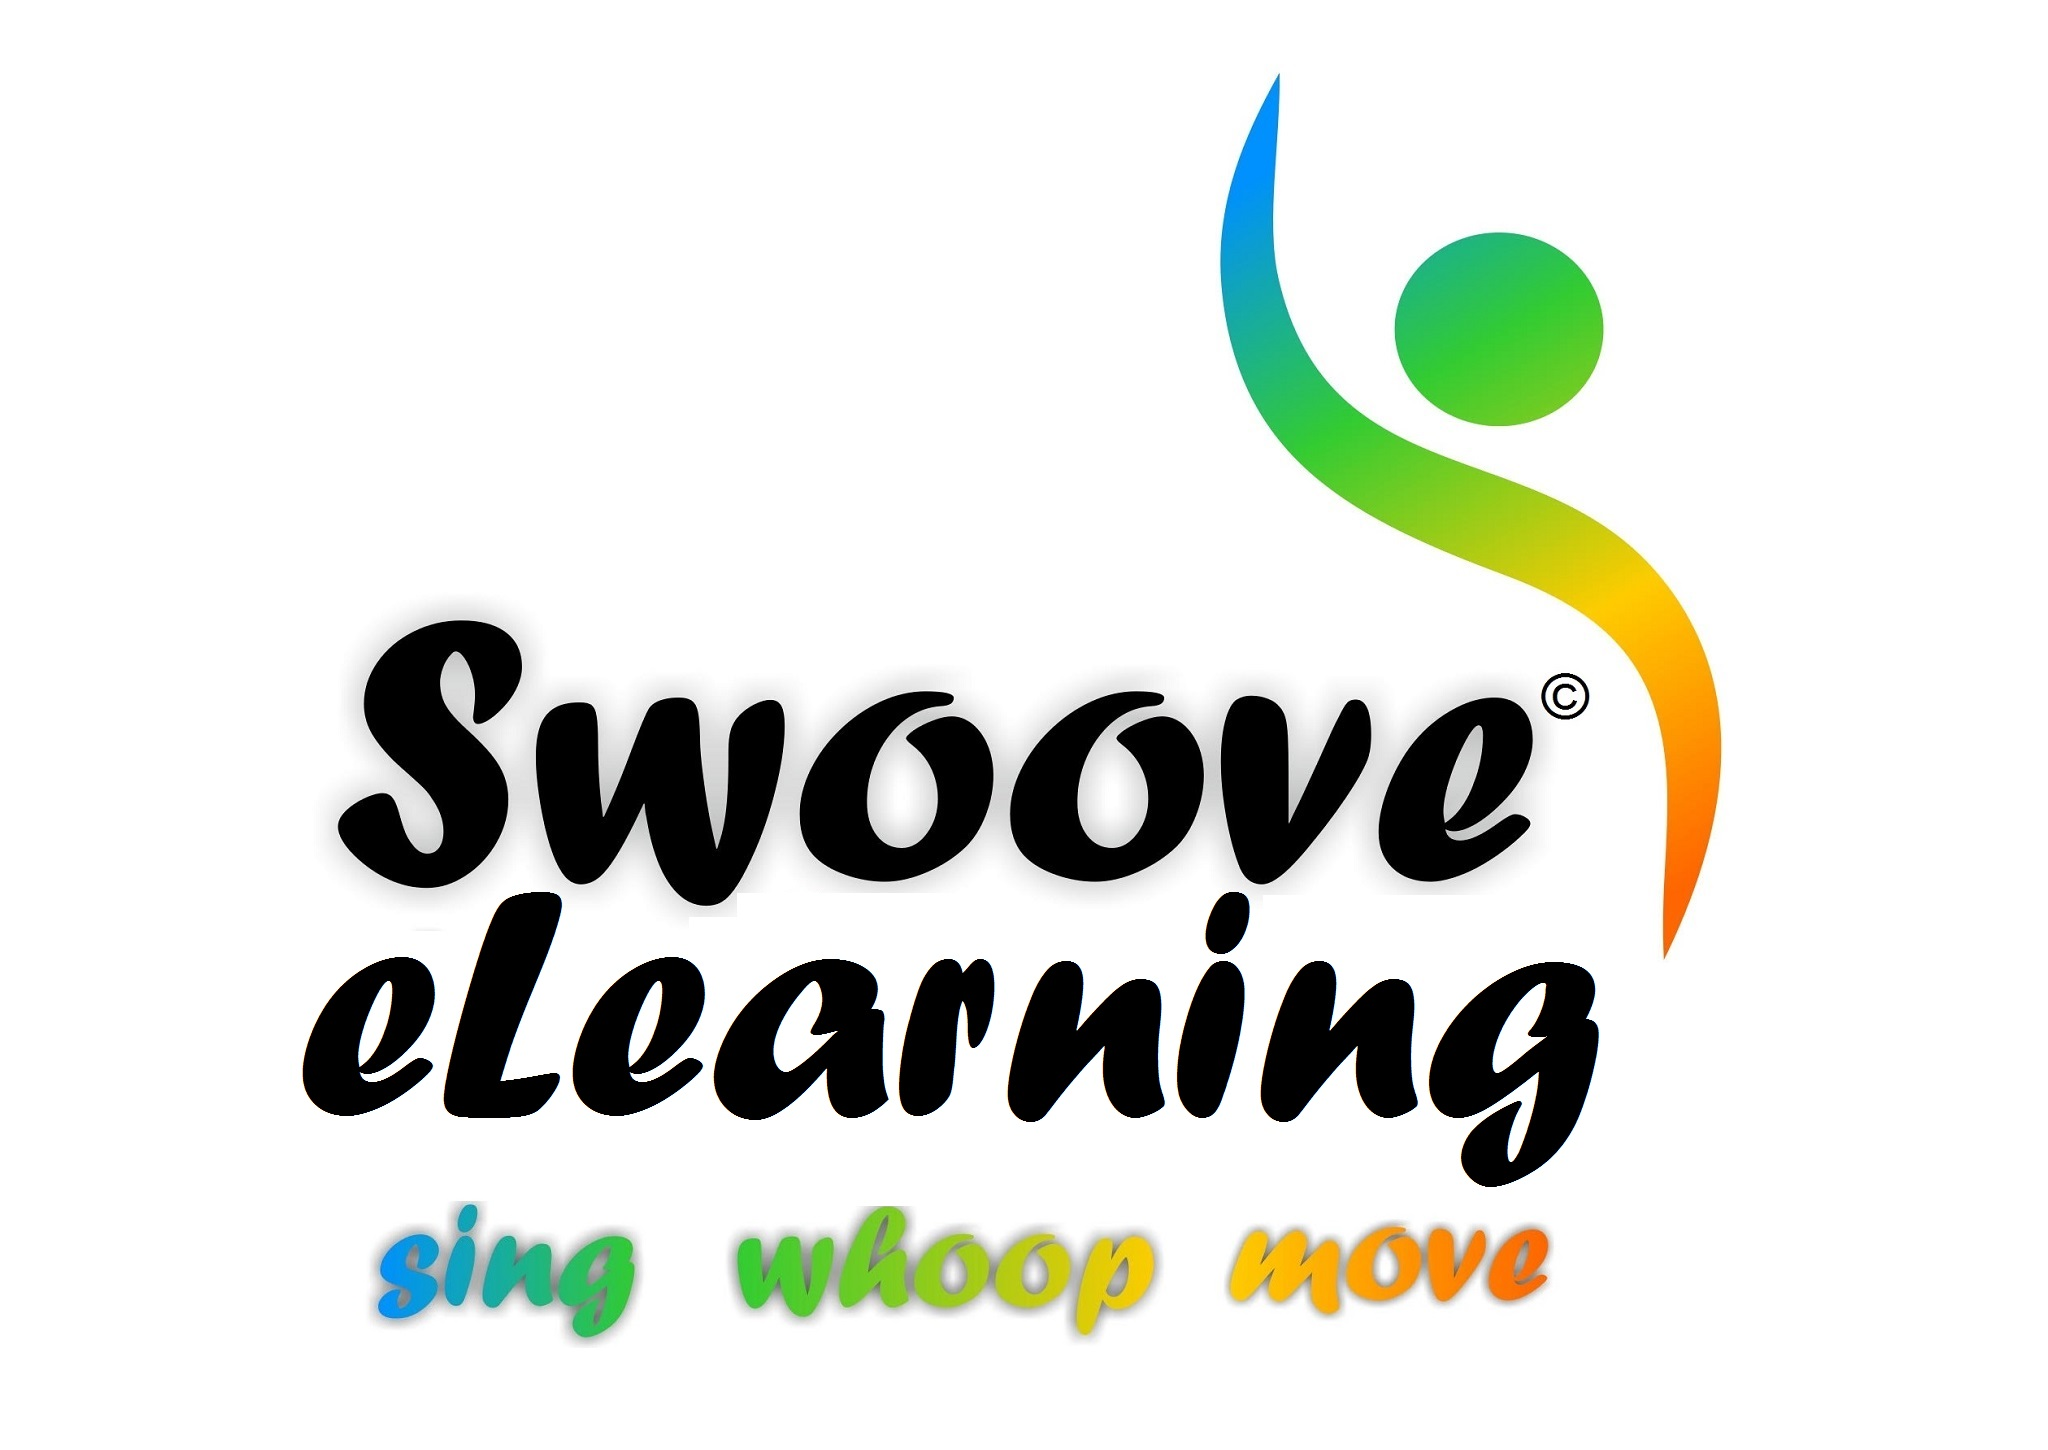 Swoove eLearning